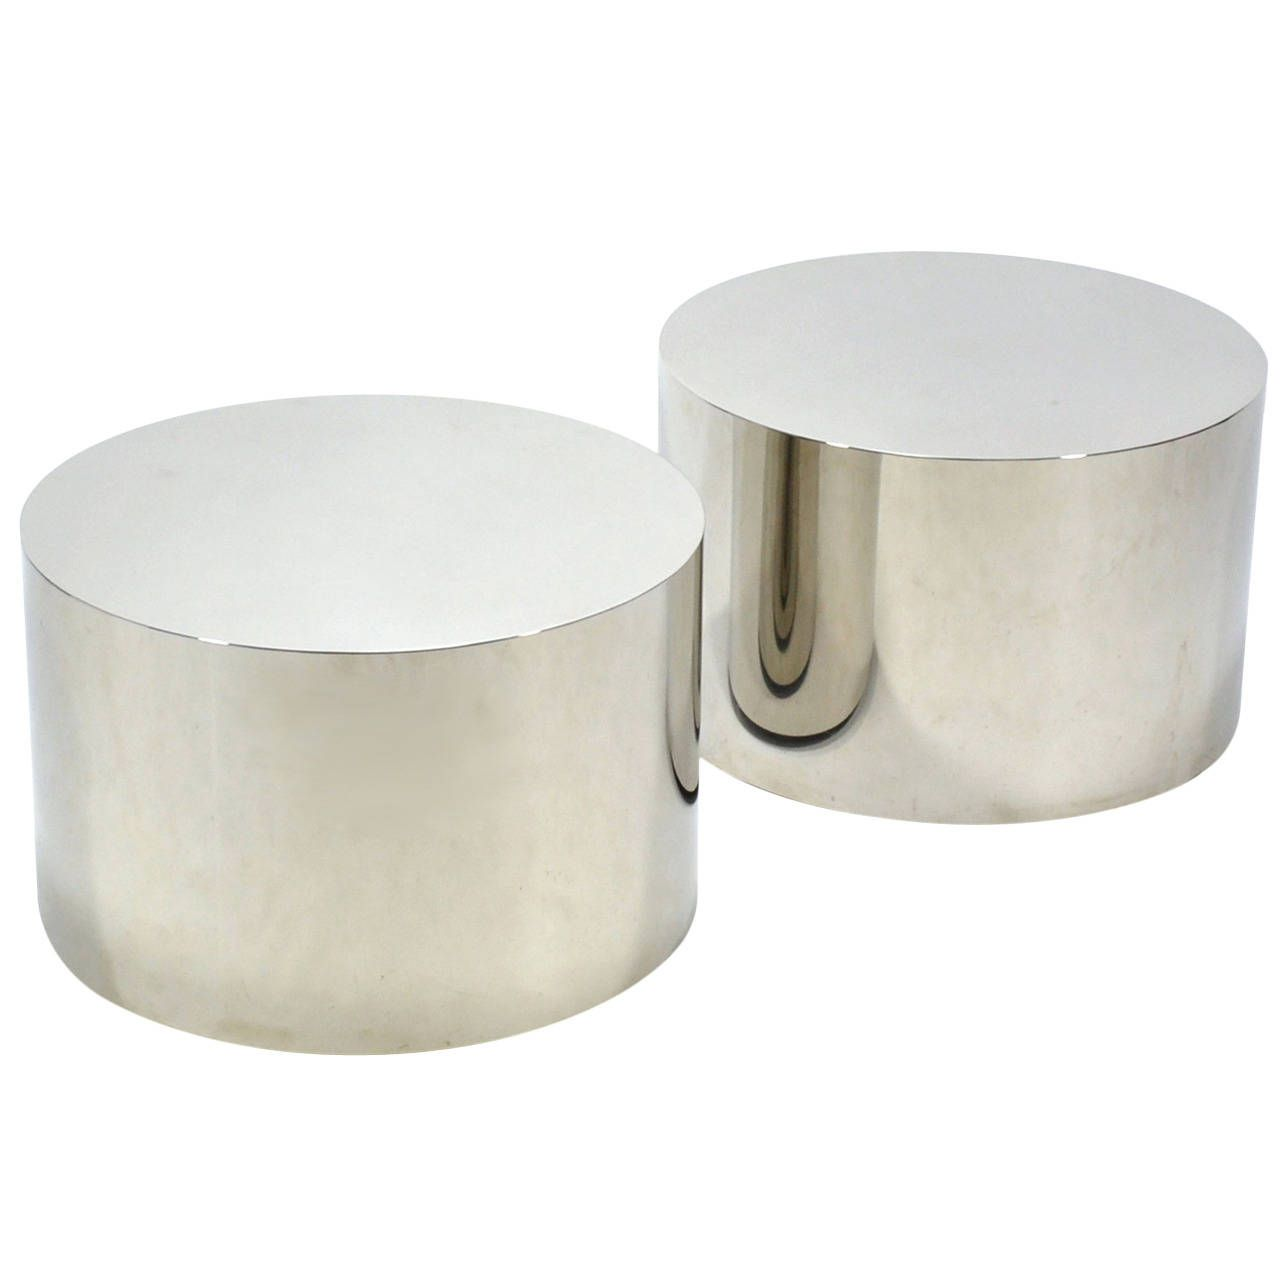 Milo Baughman Pair Of Stainless Steel Drum Tables See More Antique And Modern Coffee And